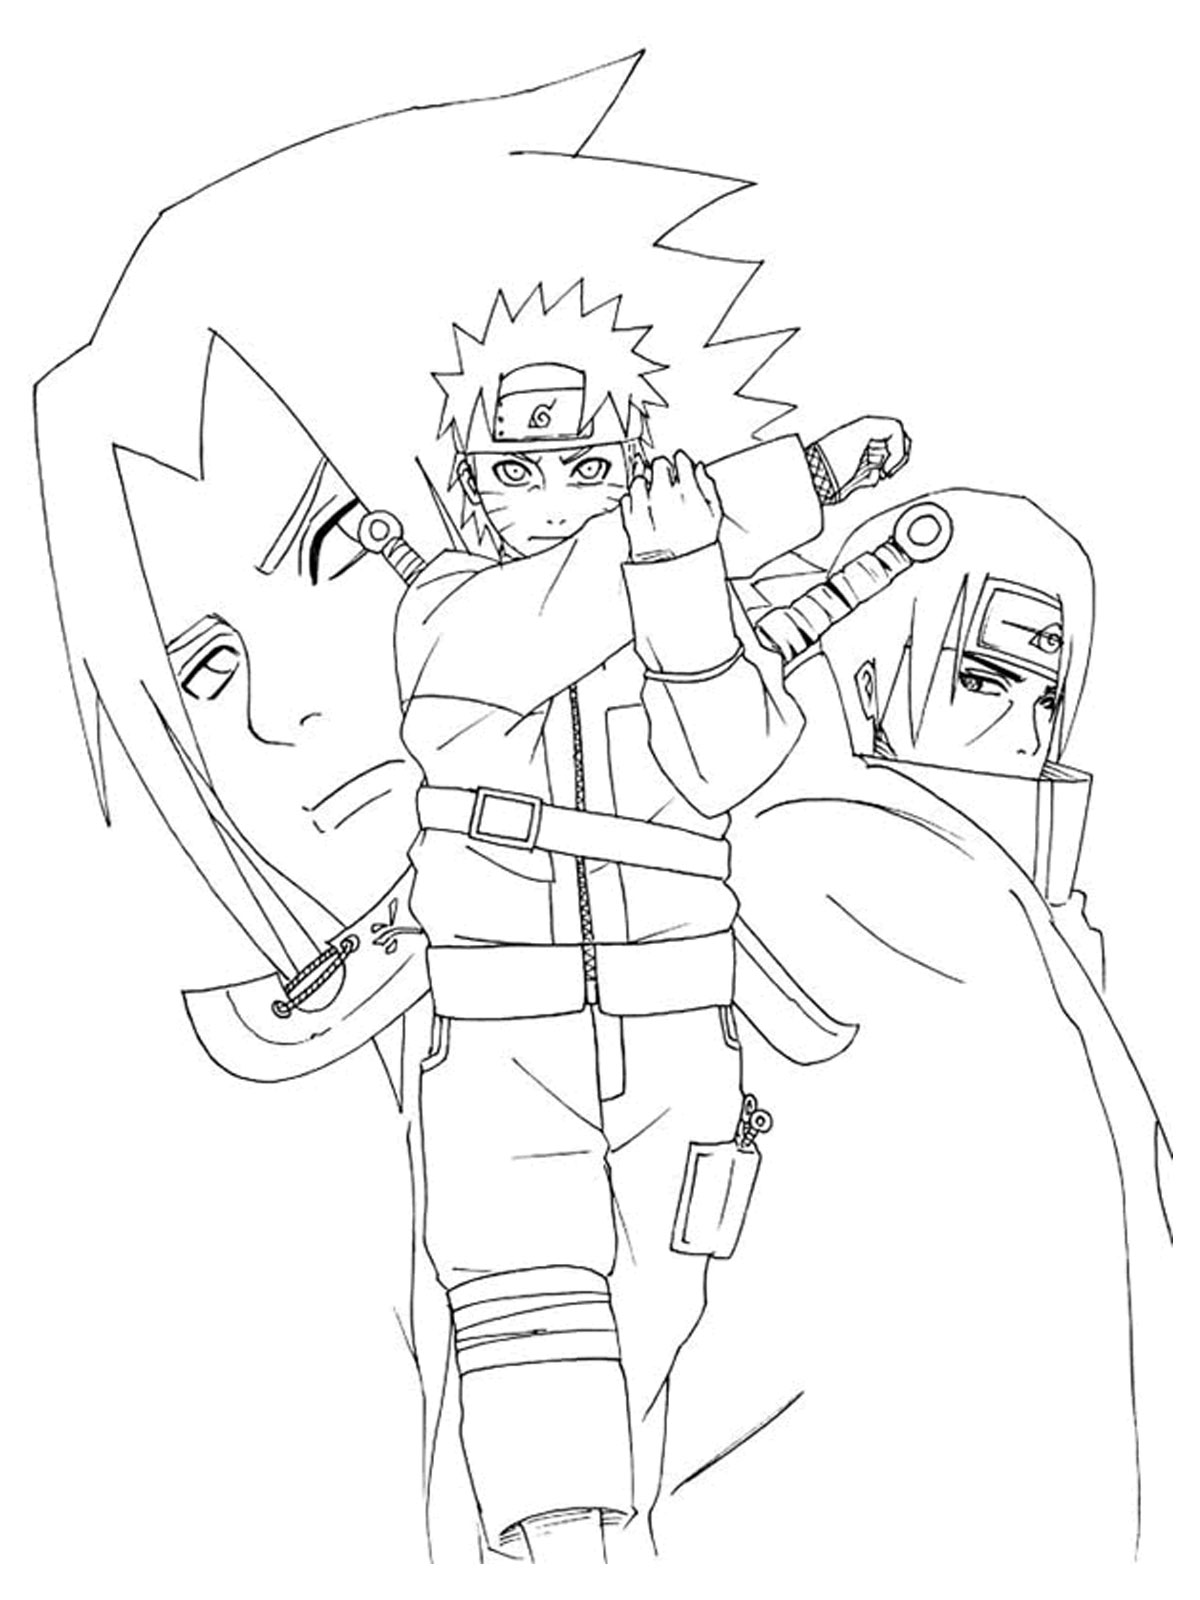 1417 Fireemblembee 383864 jhs6e thumb likewise Naruto Coloring Pages Printable also Rock Coloring Page also Disegno 19880 Bacio 12 together with I LOVE TO DRAW EYES 301249802. on sasuke cards